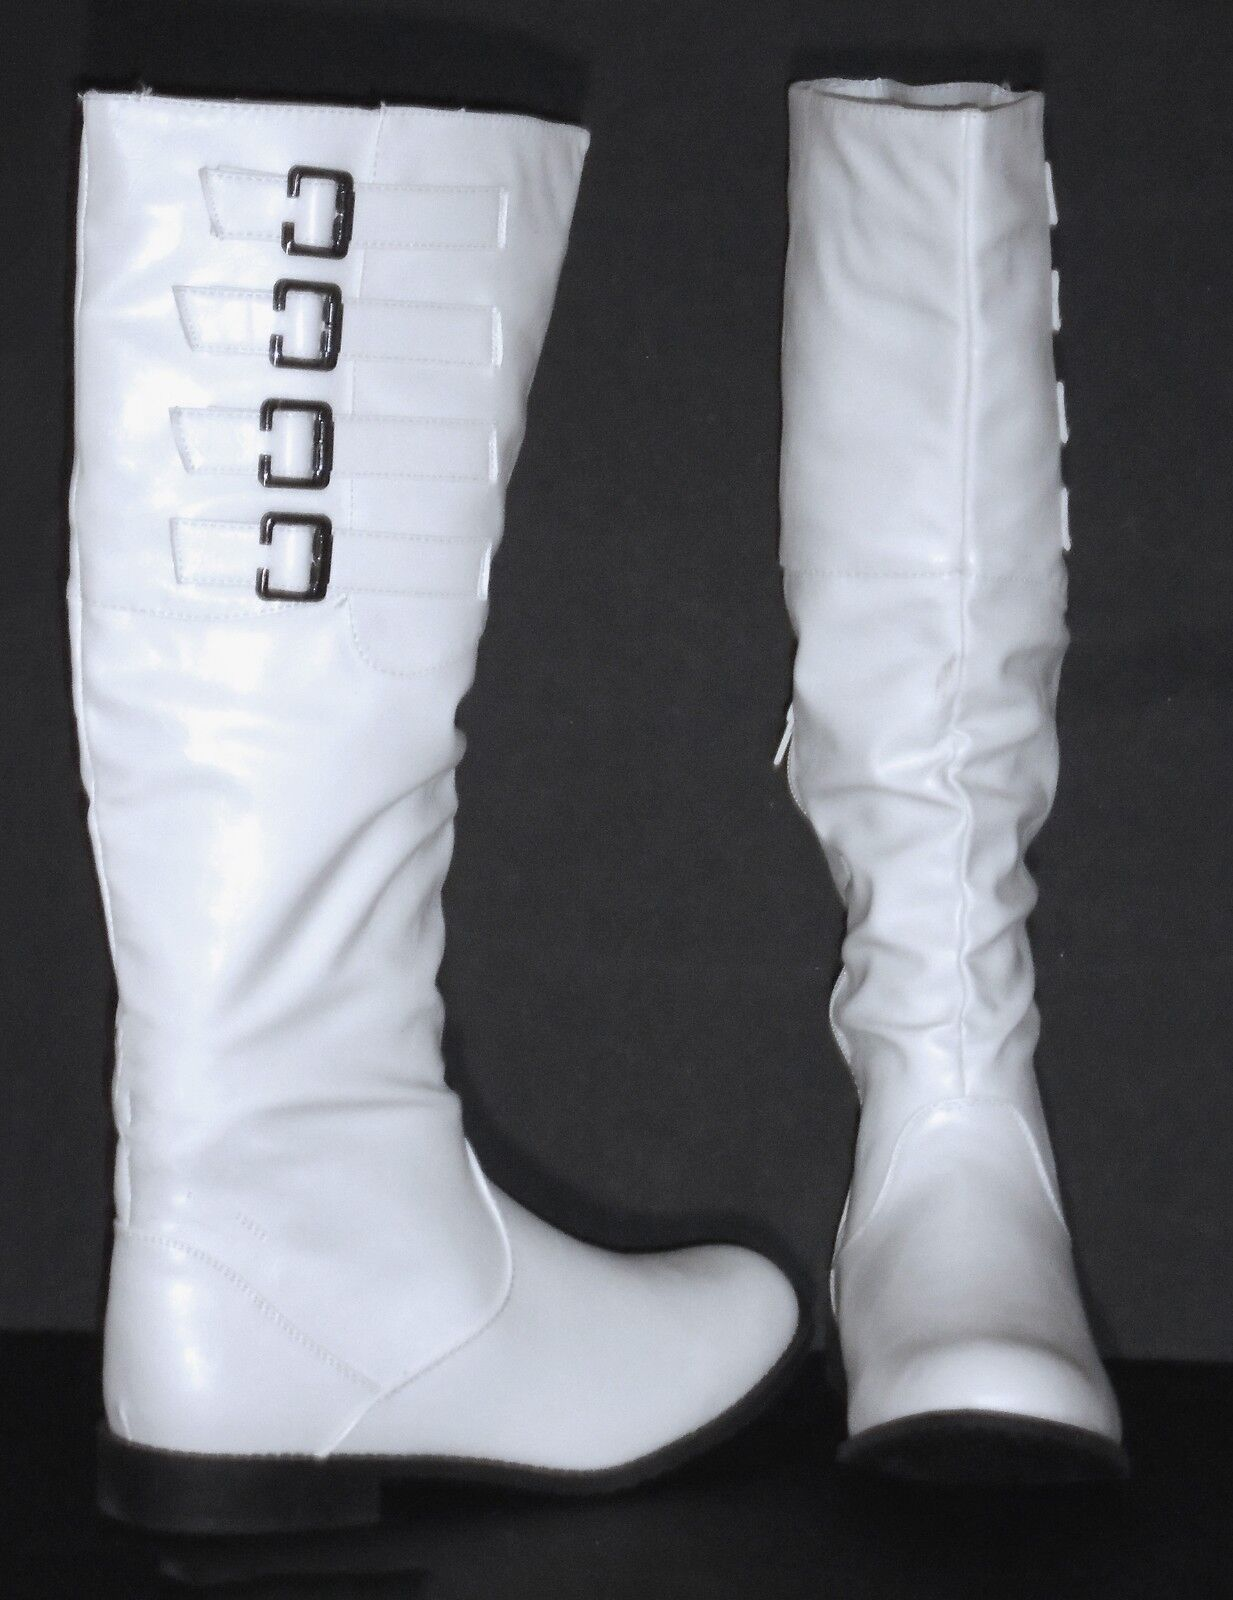 WHITE KNEE-HI FASHION BOOTS 4 BUCKLED STRAPS –TEXTILE LEATHER - SIZE 7½ –NEW